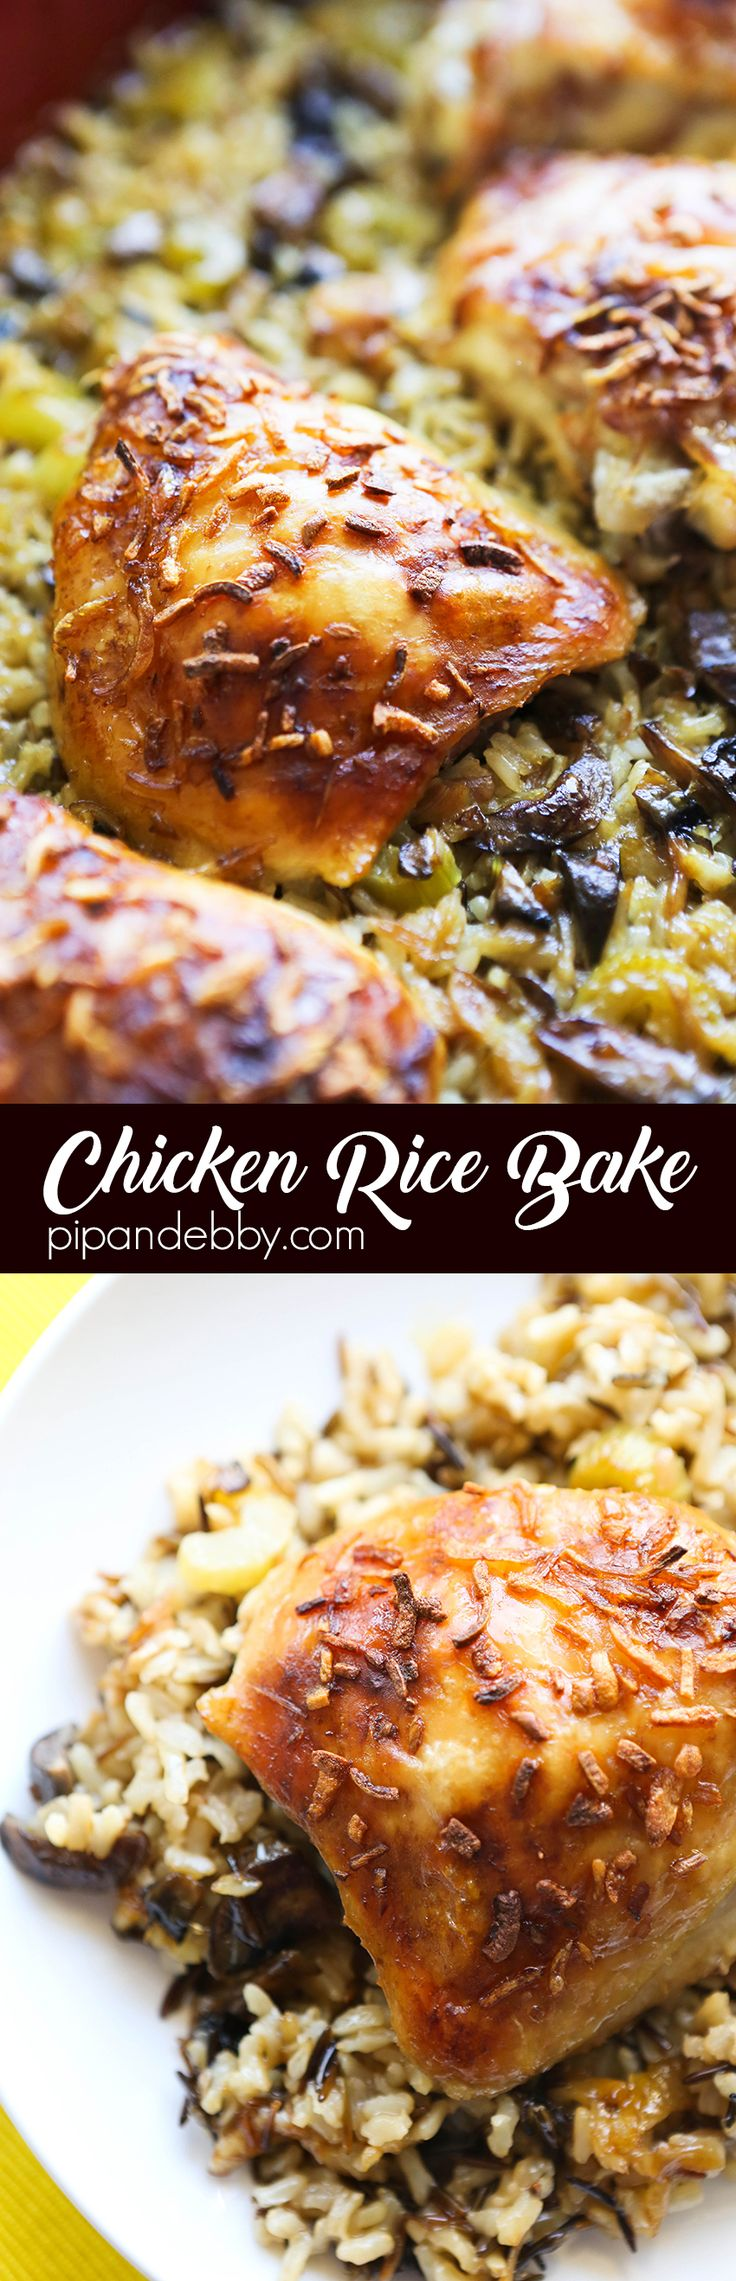 EASY Chicken Rice Bake | Ok, this is one of the BEST dinners I have made in my kitchen....ever! The chicken and rice cooked perfectly and easily and it was SO DELICIOUS. This is a total home run and it will quickly become a family favorite for you, too!